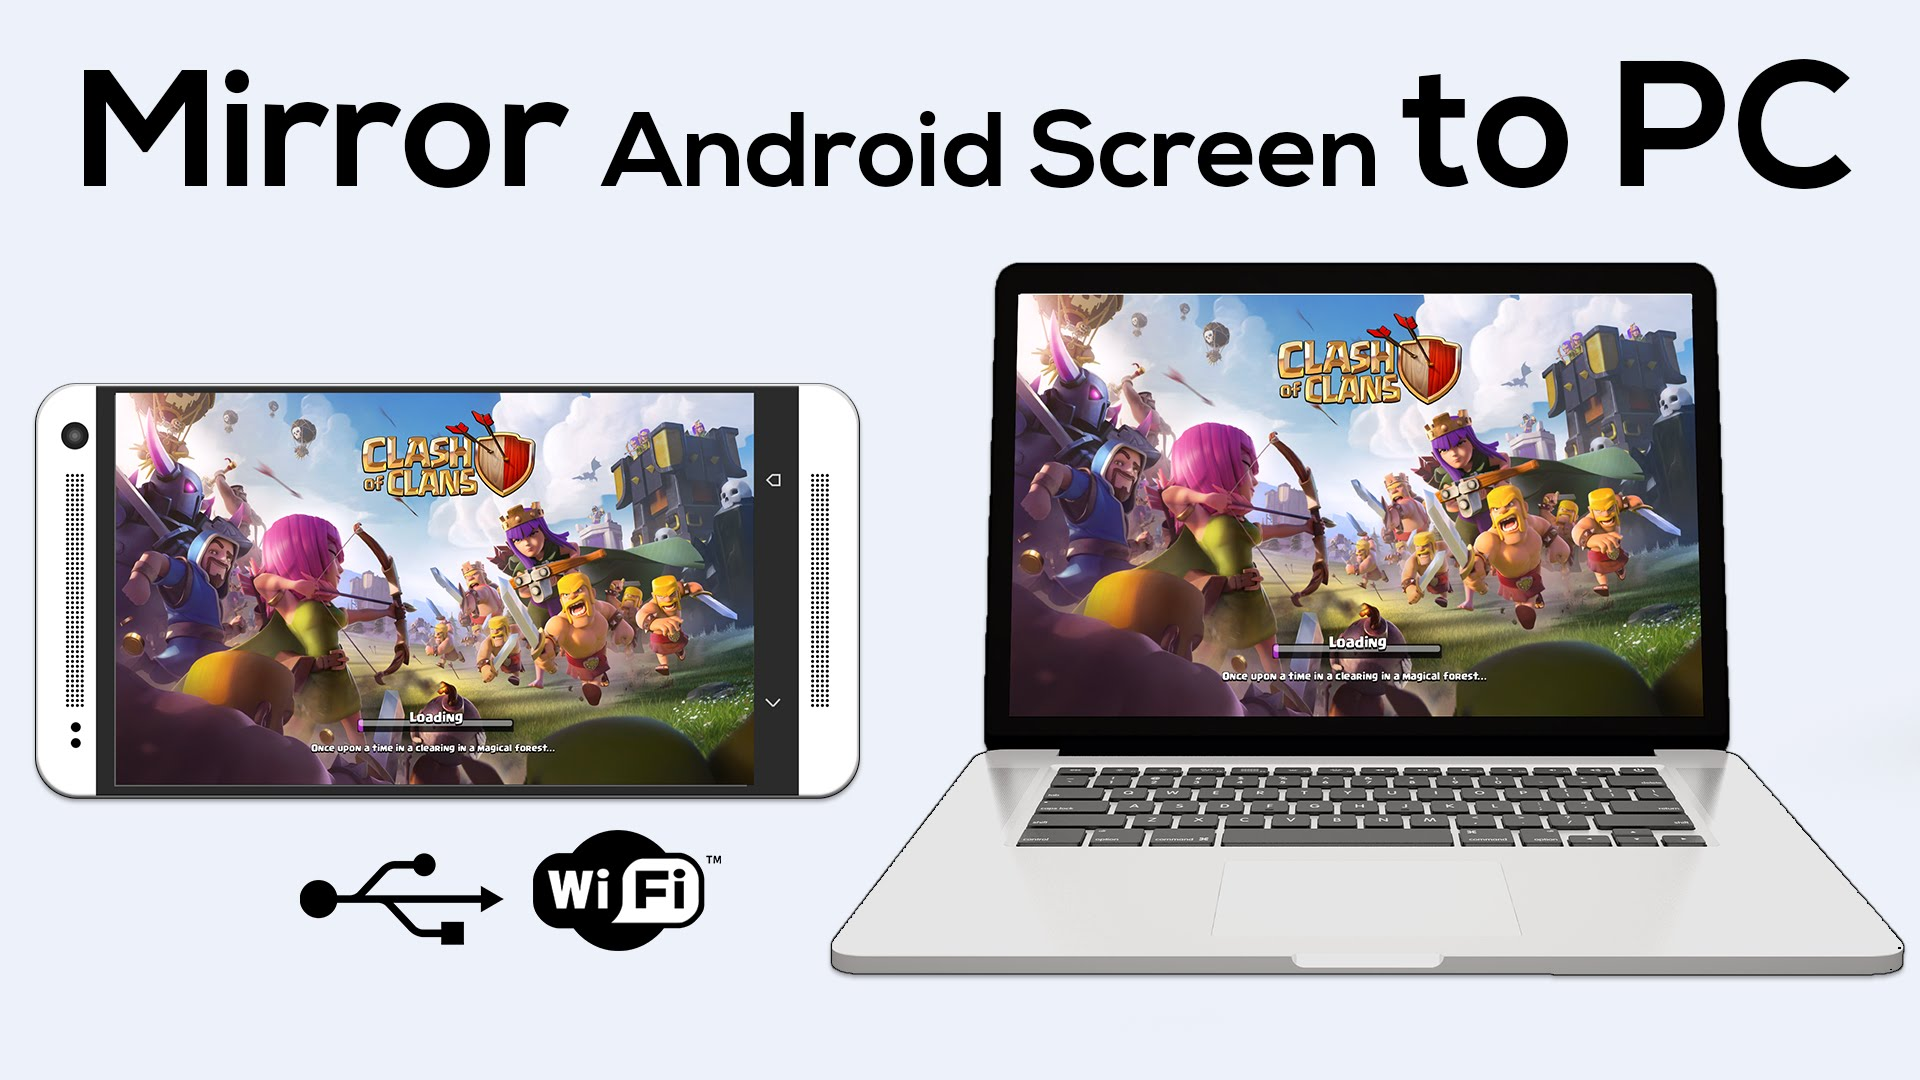 How to Use your Mobile Phone Screen, Android, Tablets as Second PC Monitor